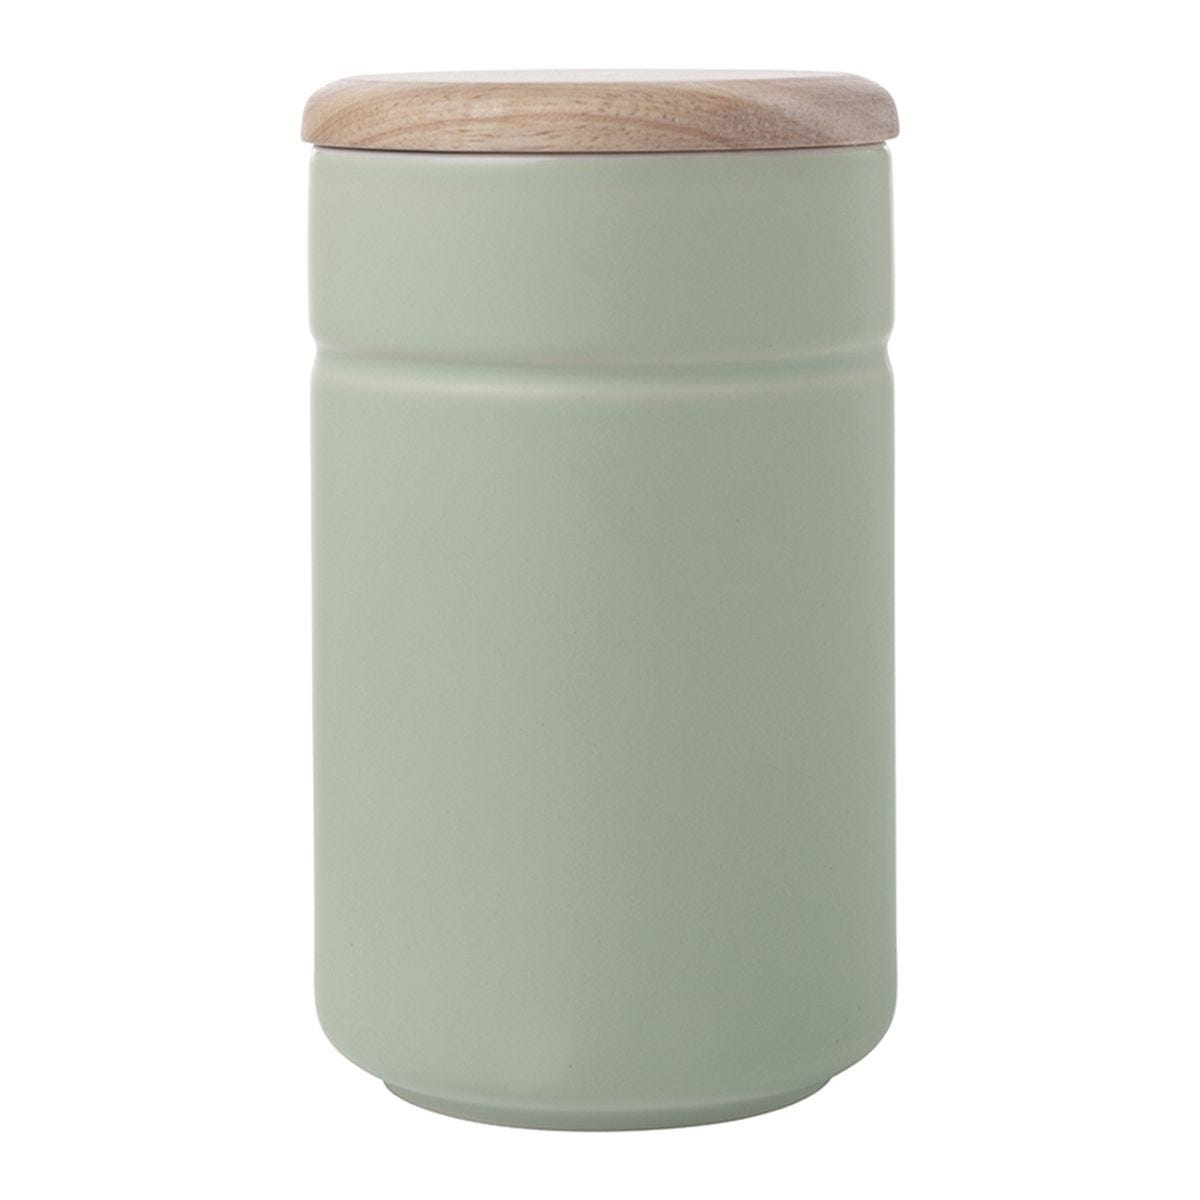 Maxwell & Williams Tint 900ml Canister Mint